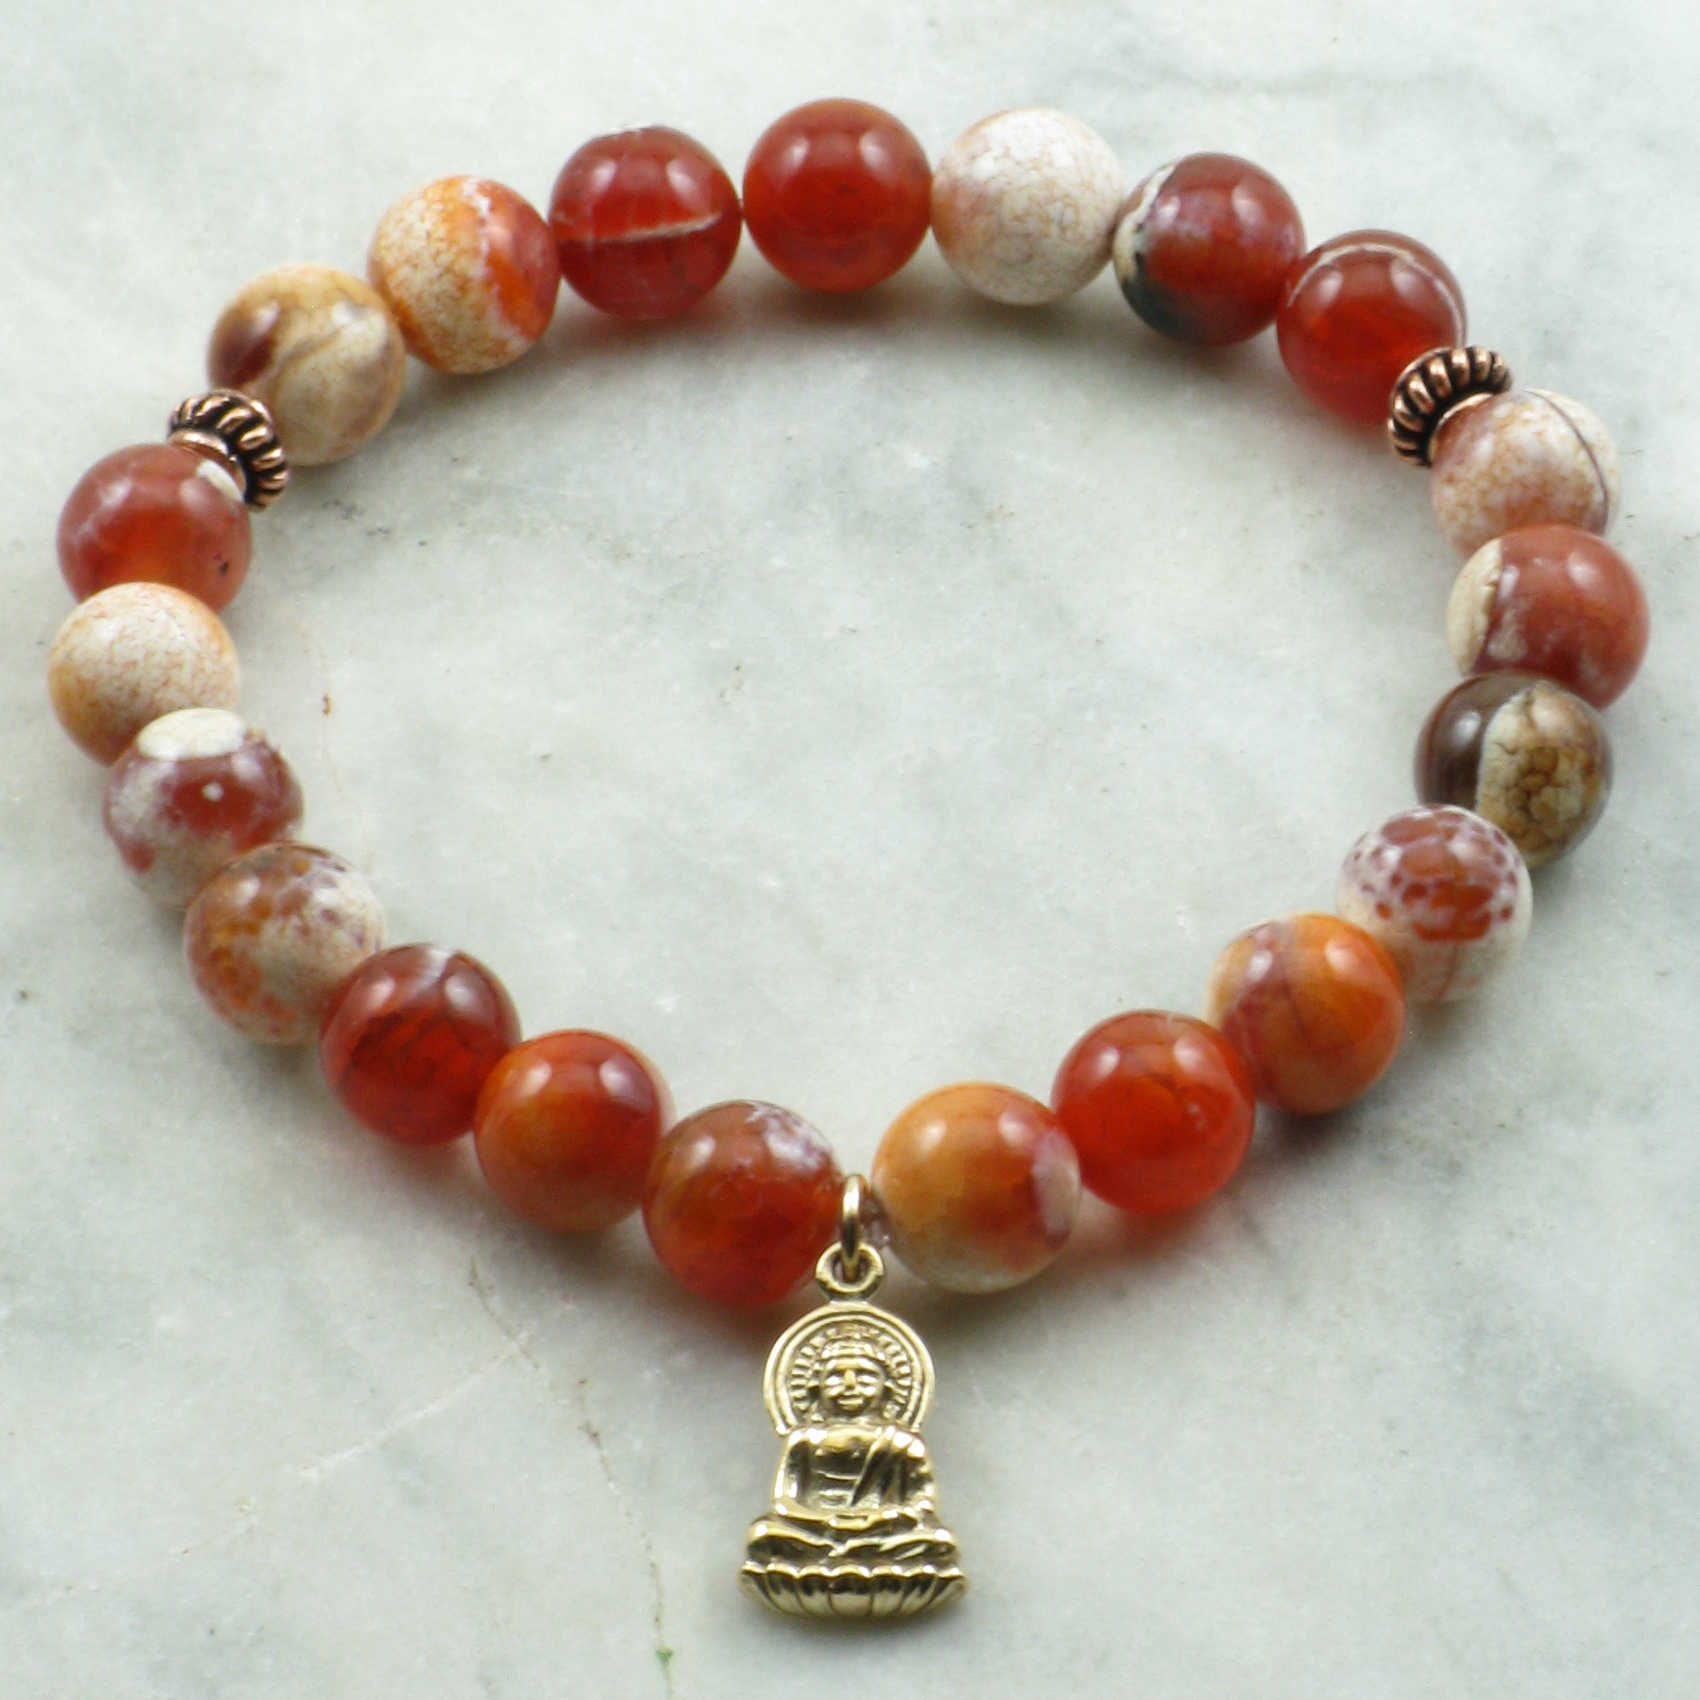 Creativity Mala Bracelet 21 Fire Agate Mala Beads Yoga